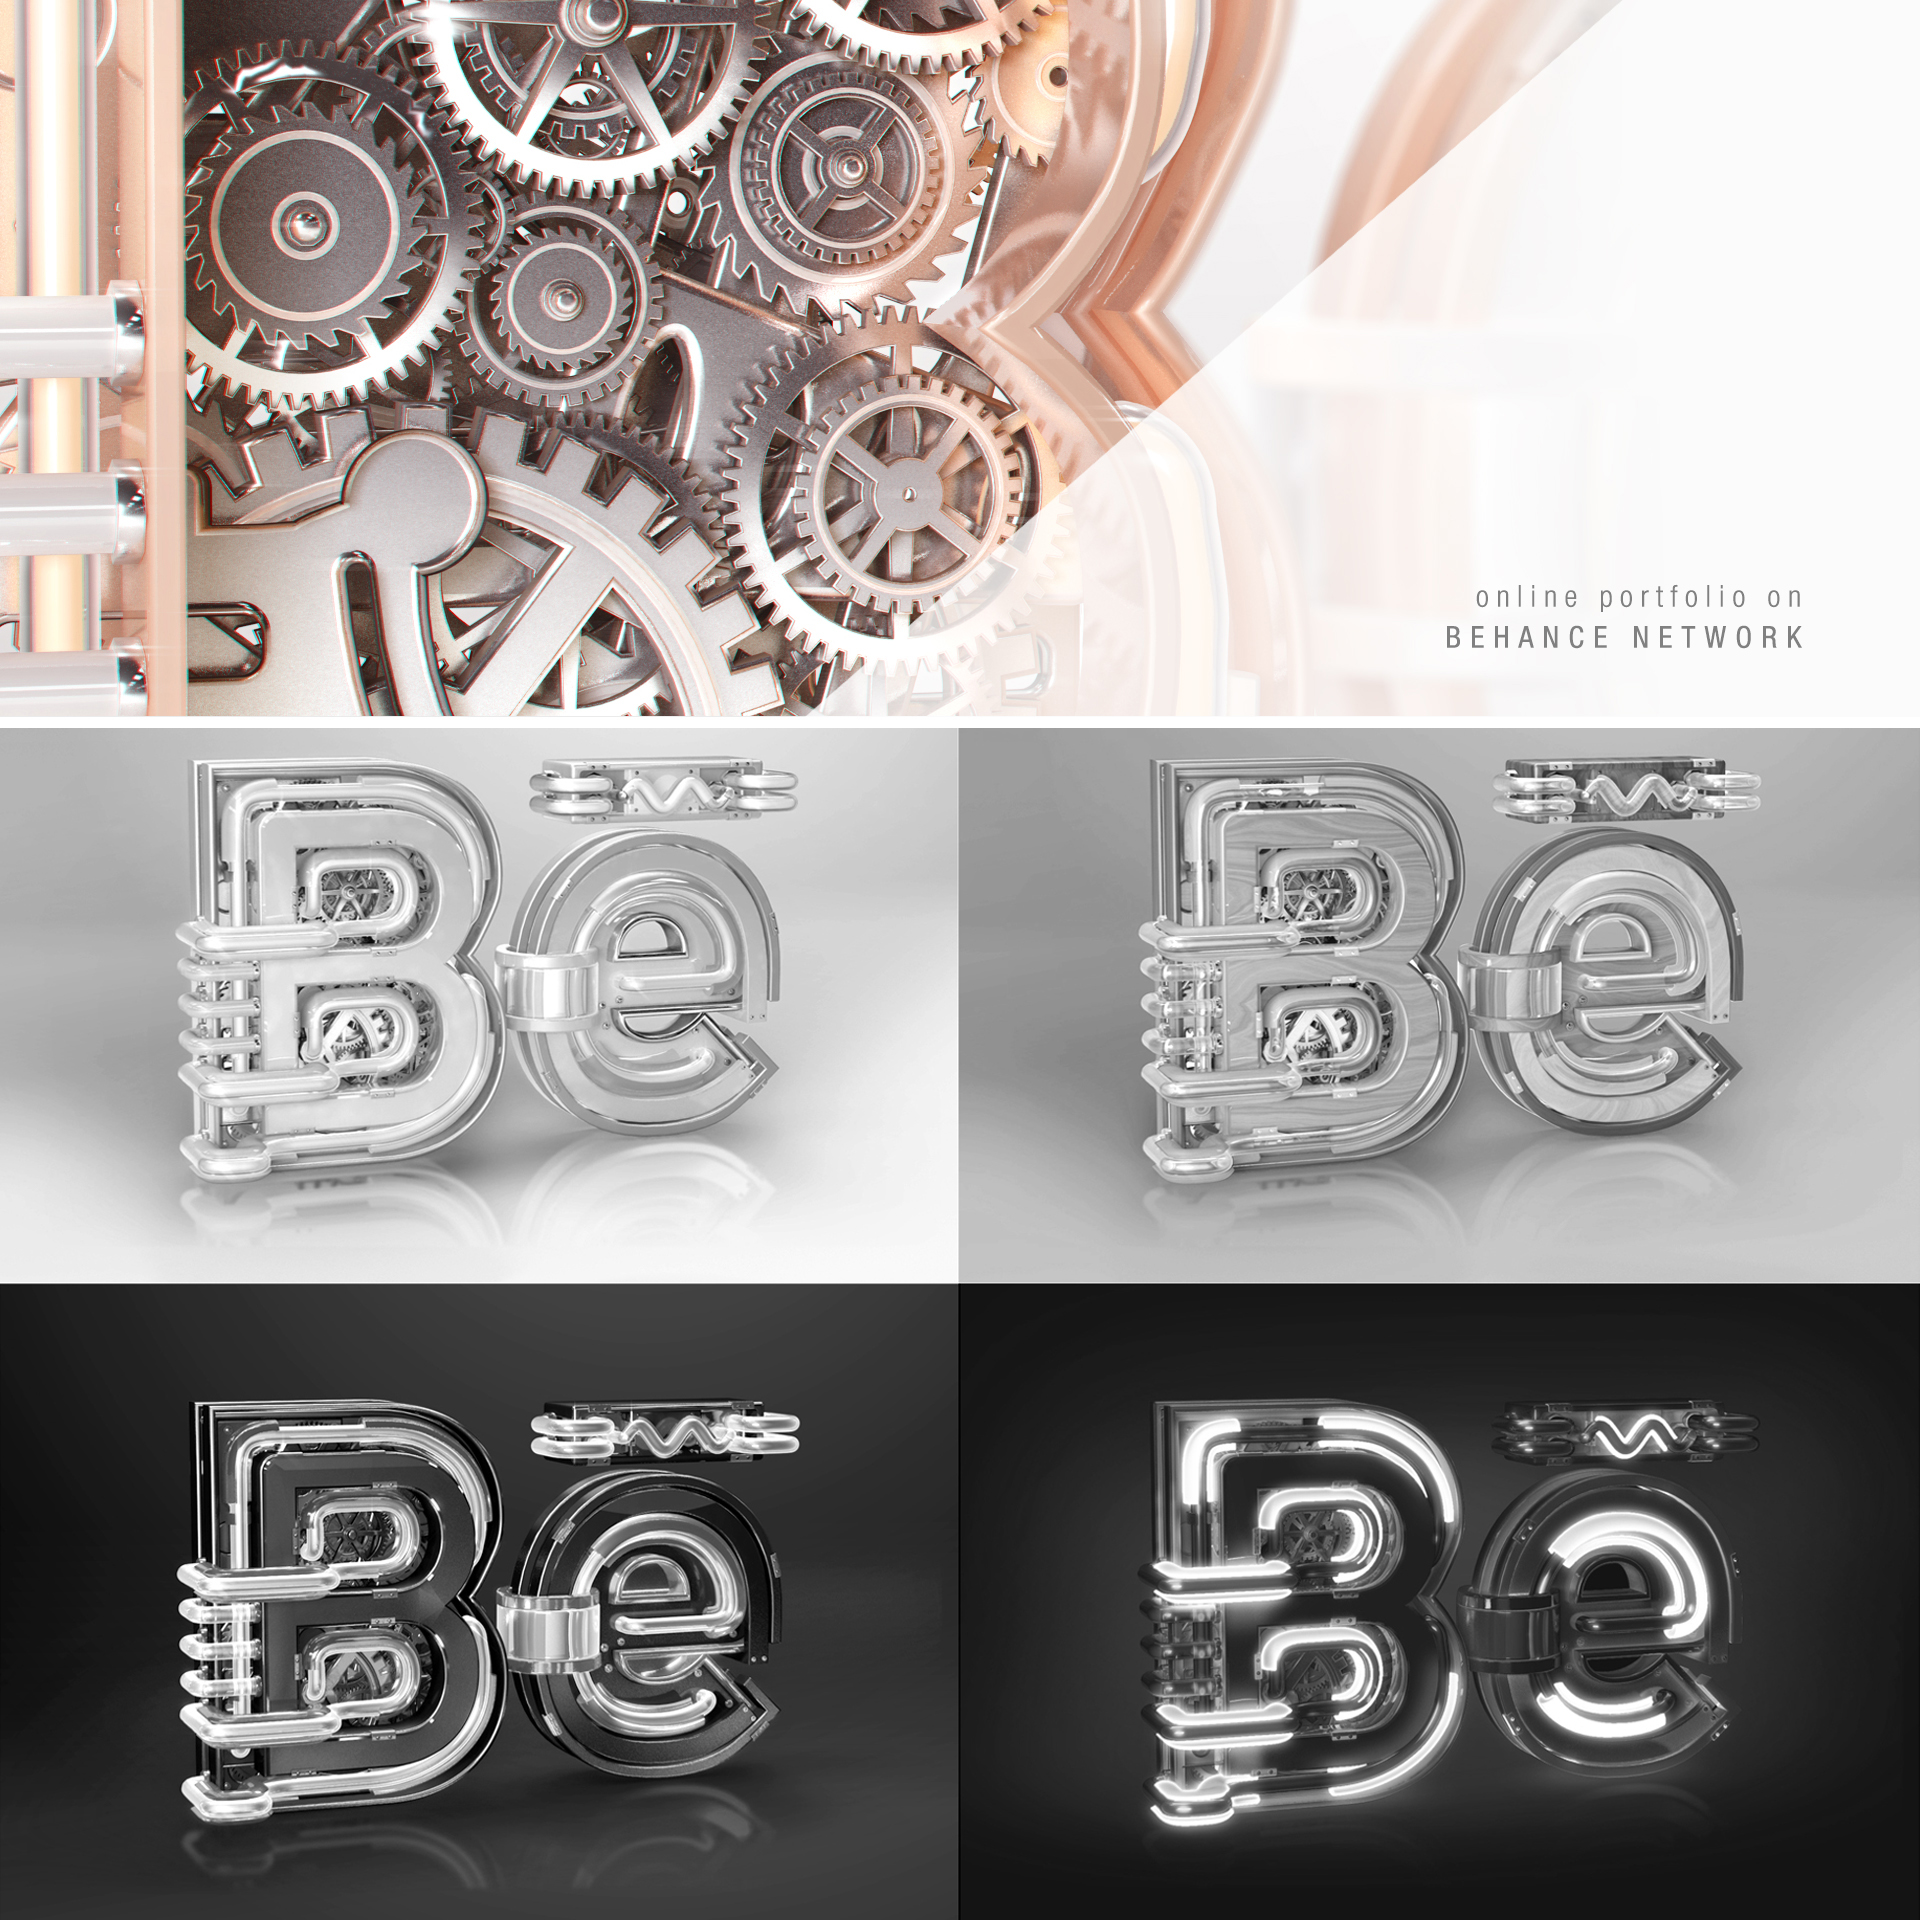 Behance Network   Key visuals illustrate the BE for Behance.